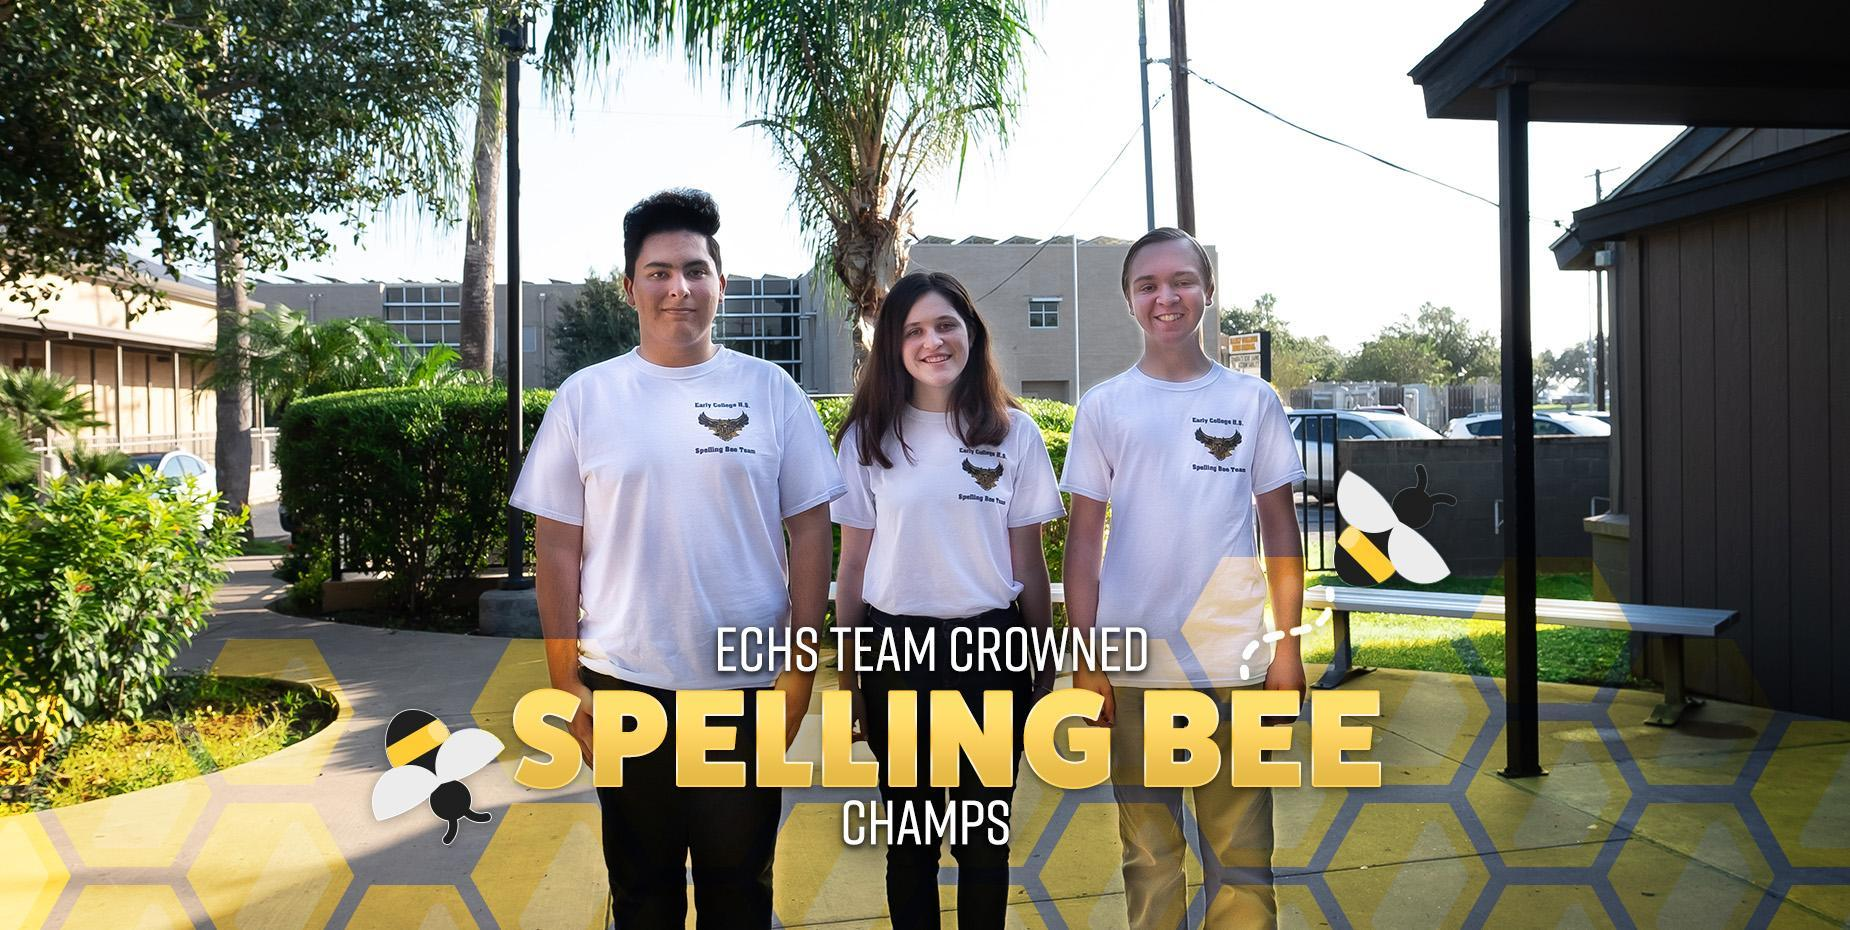 ECHS team crowned spelling bee champs